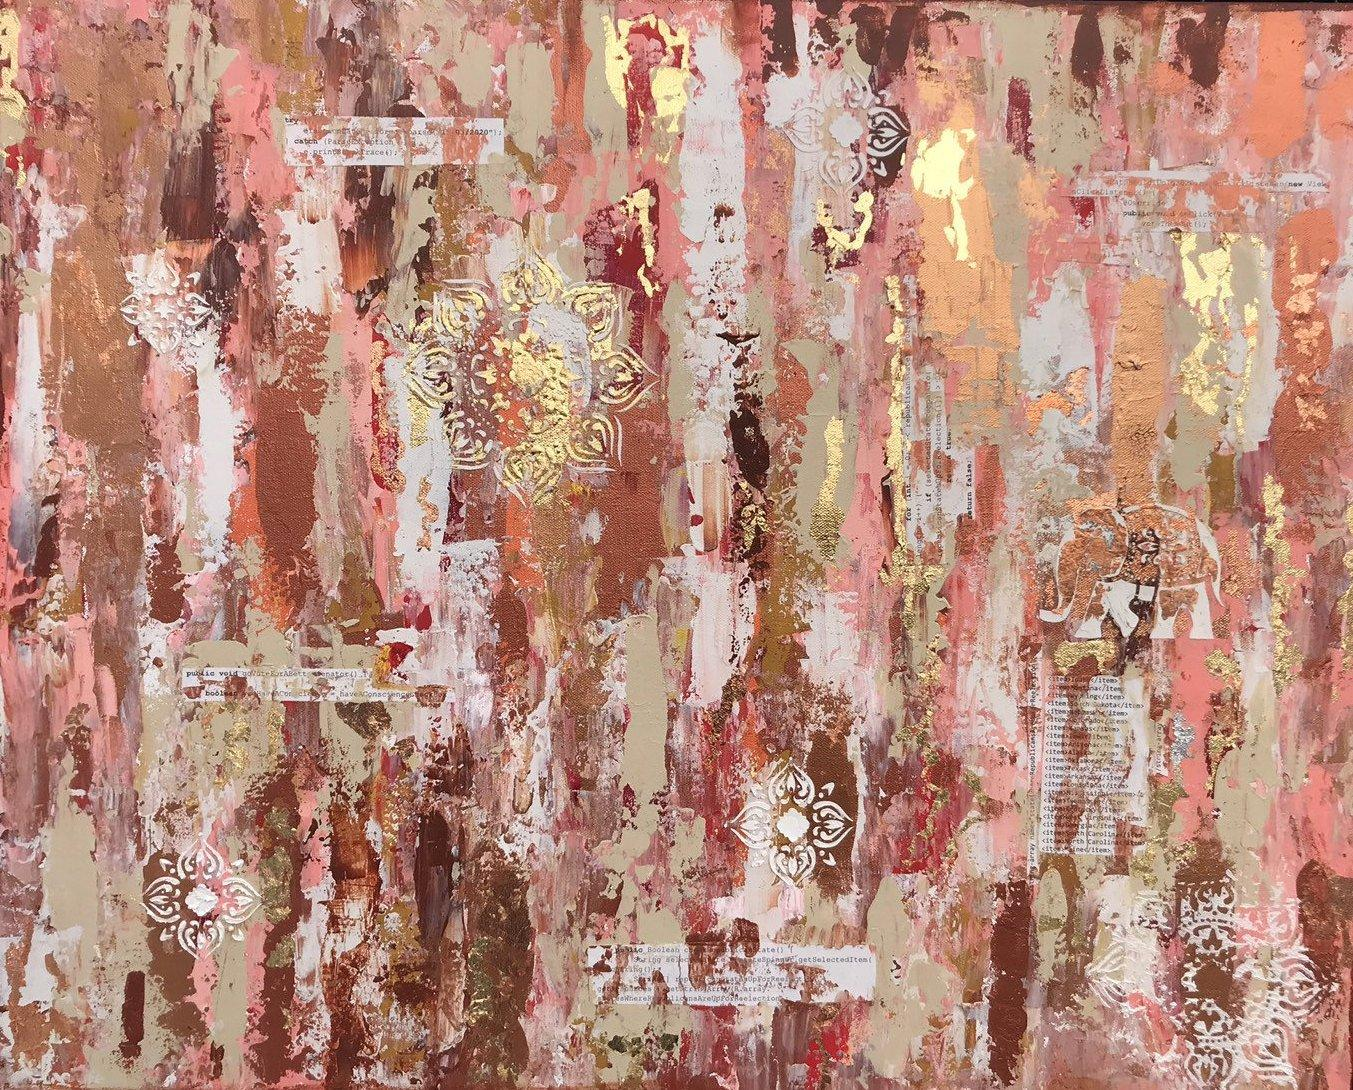 Large original painting - political abstract art with software code about voting